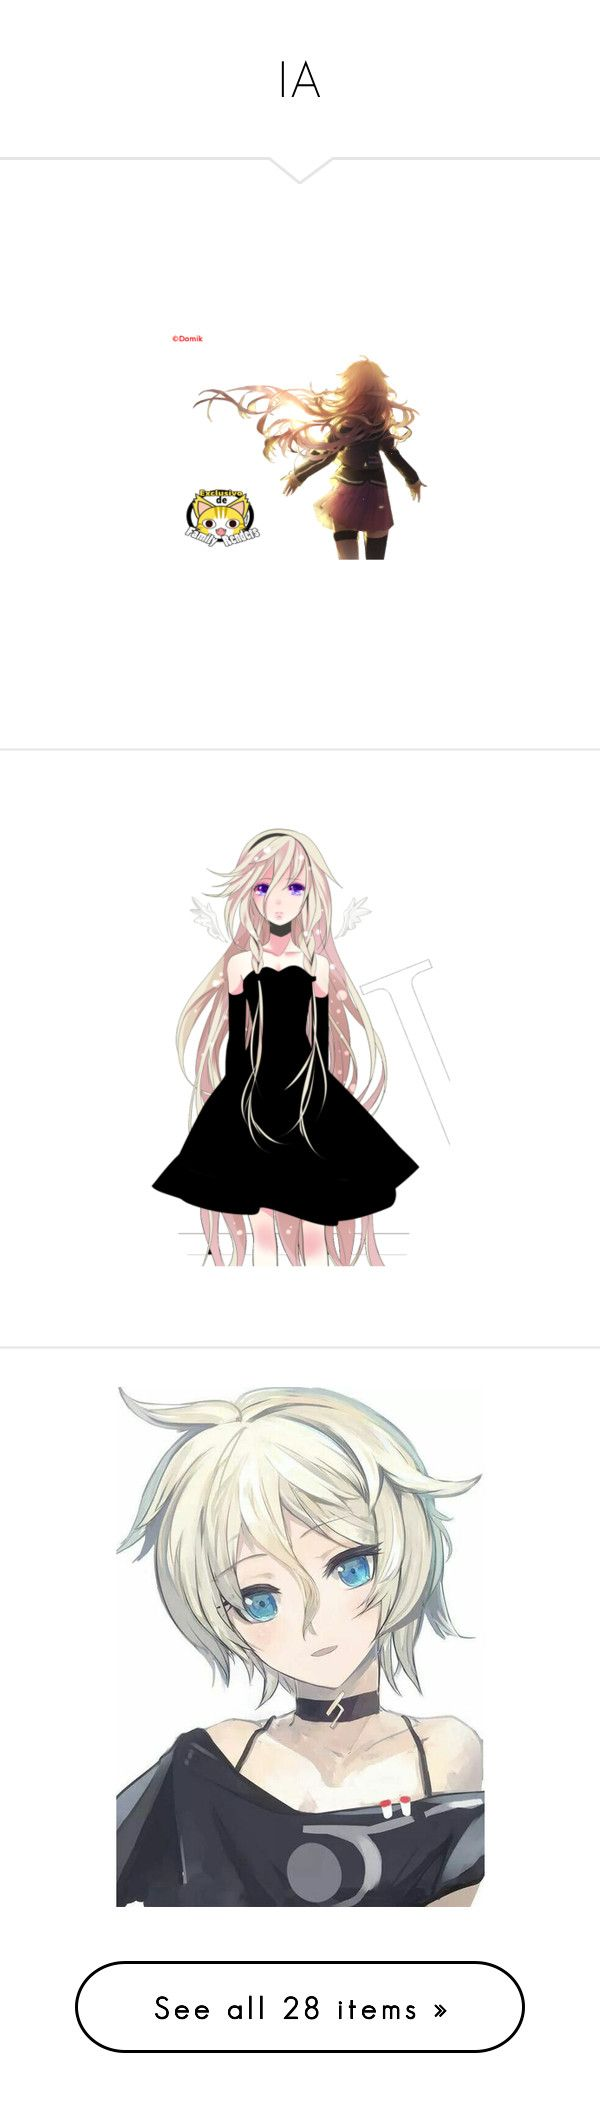 """IA"" by yumecchi ❤ liked on Polyvore featuring anime, vocaloid, filler, drawings, people, art, figures, ia, anime girl and effect"